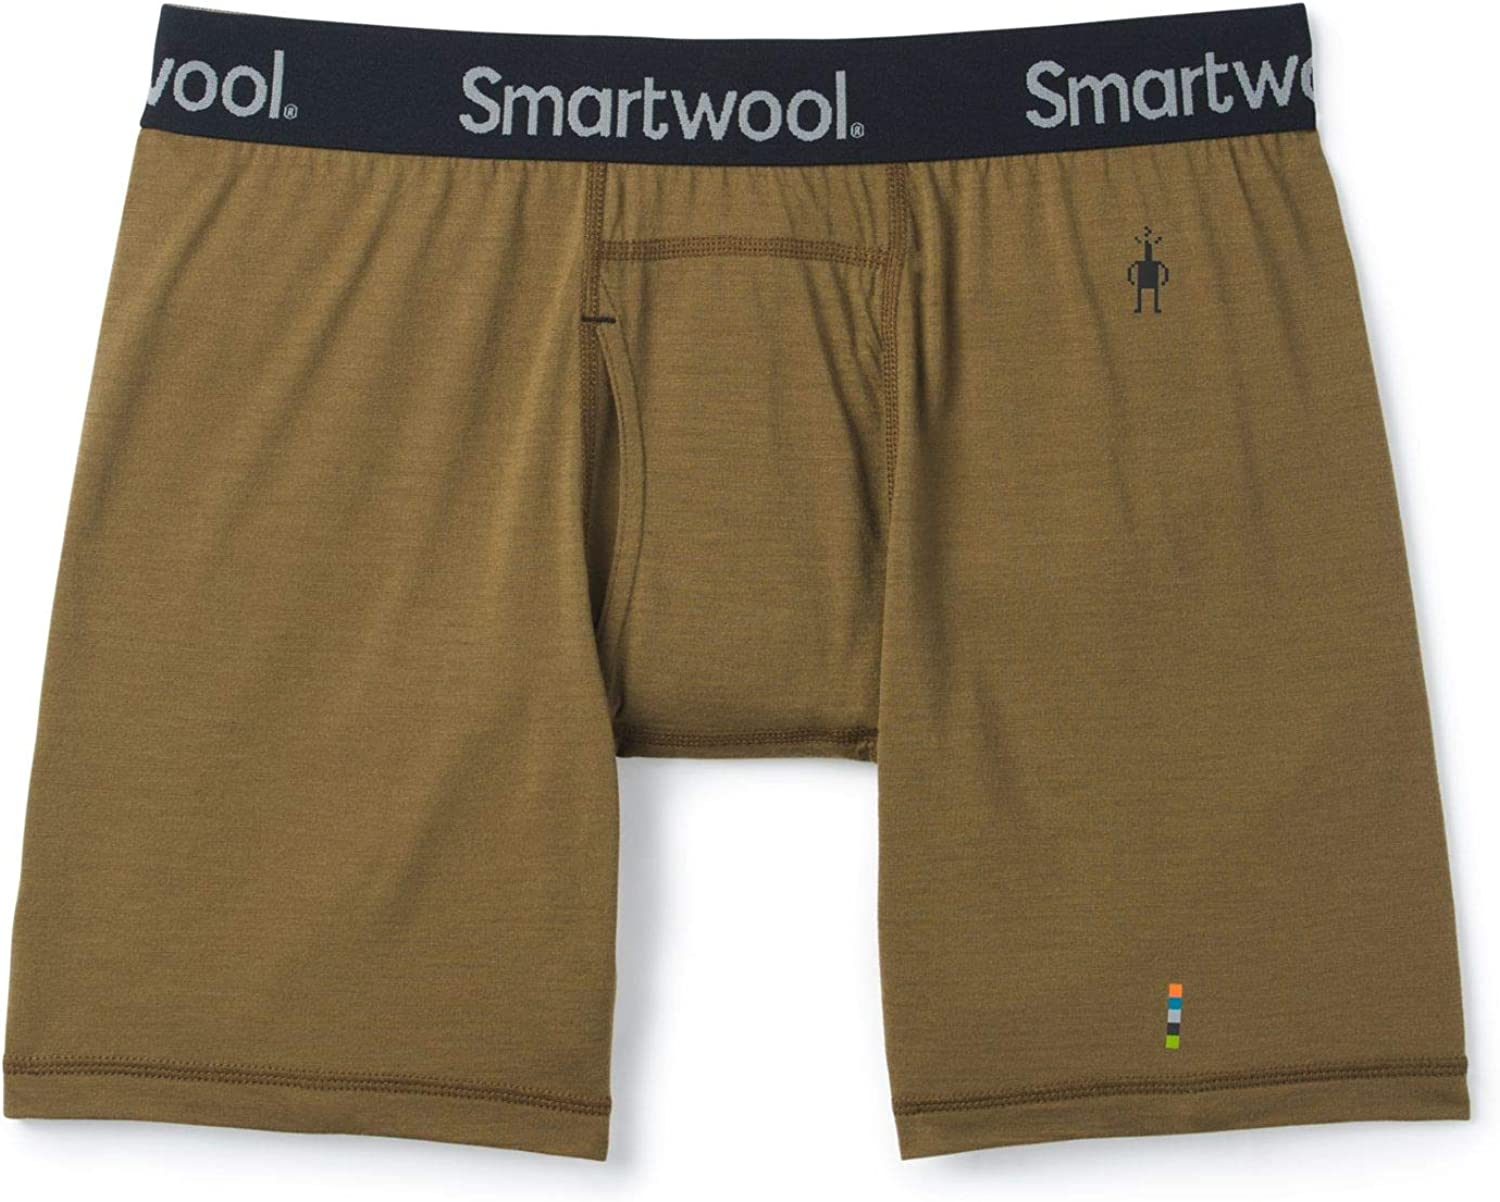 Smartwool Mens Merino 150 Boxer Brief Boxed Homme